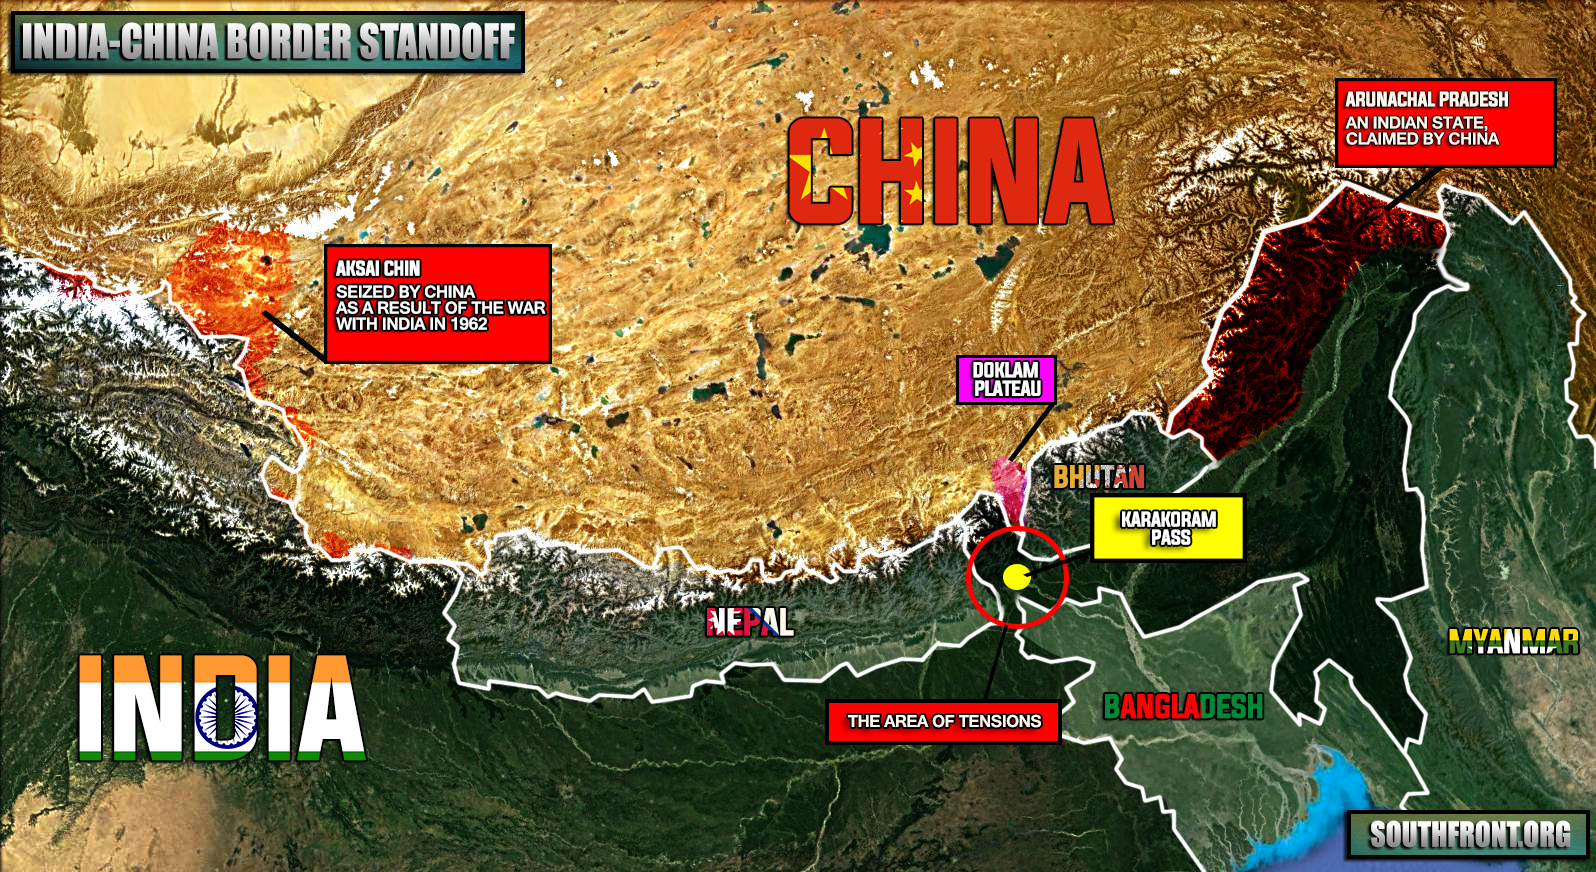 Doklam plateau india china border standoff map gumiabroncs Choice Image